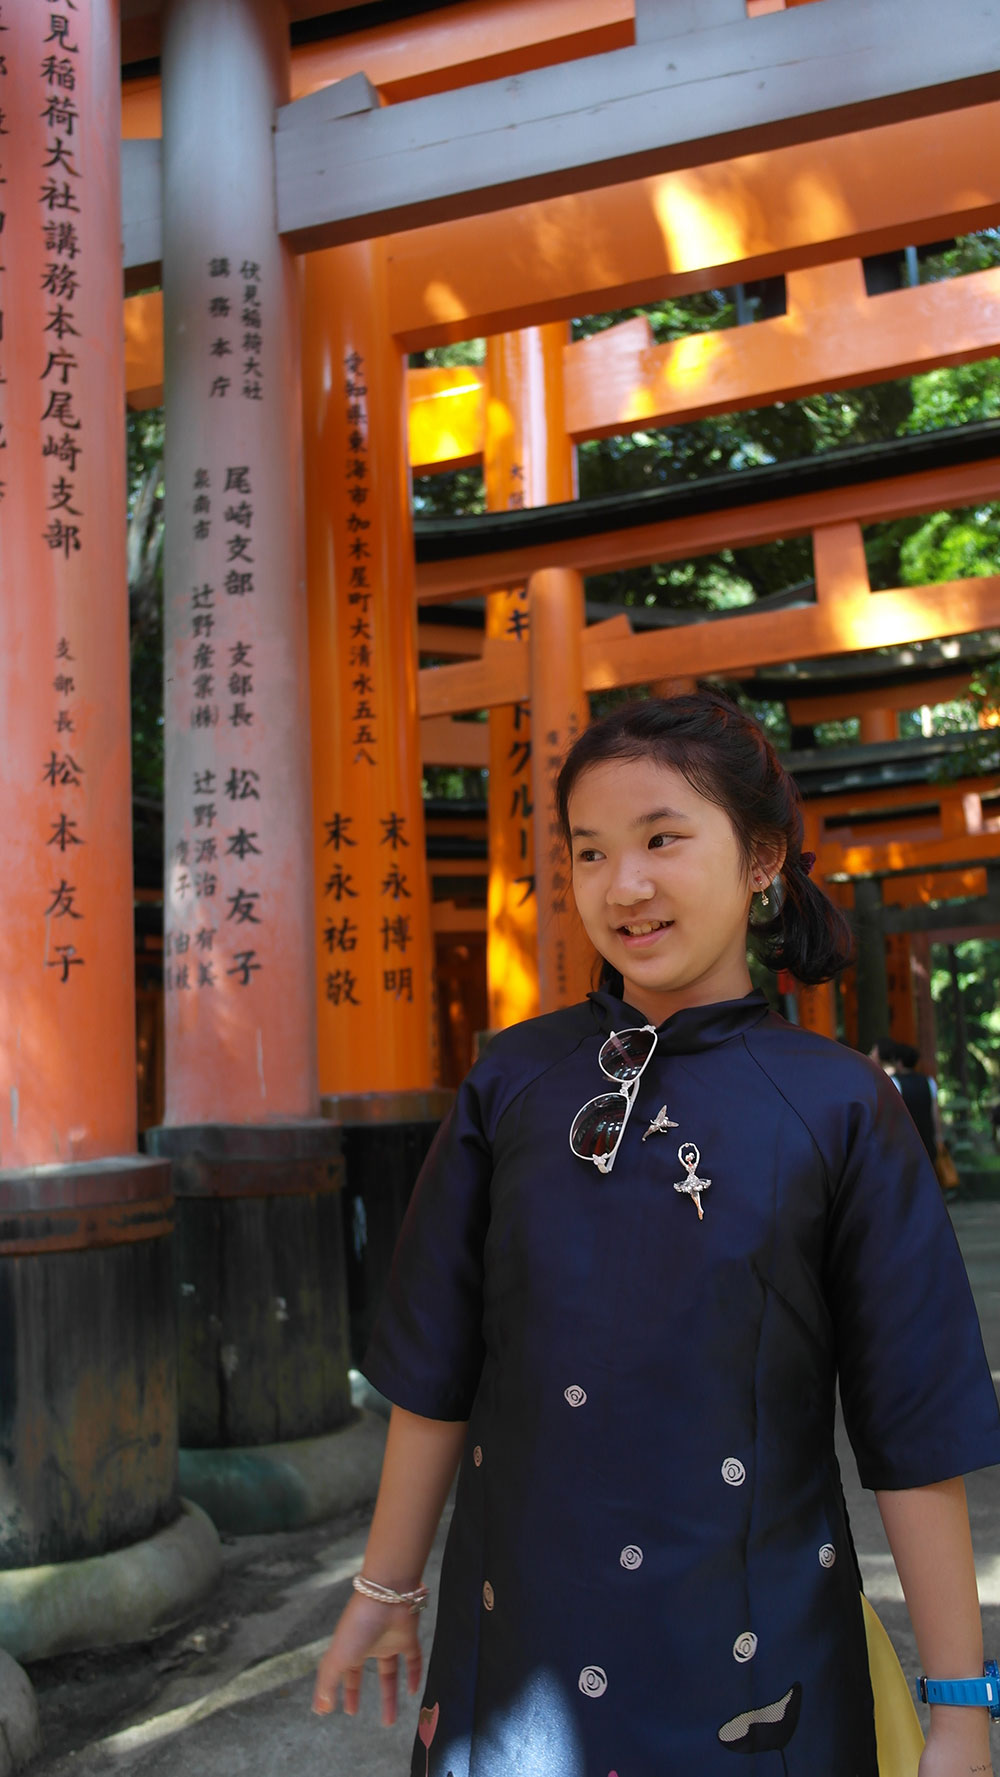 Fushimi-Inari-Shrine-61